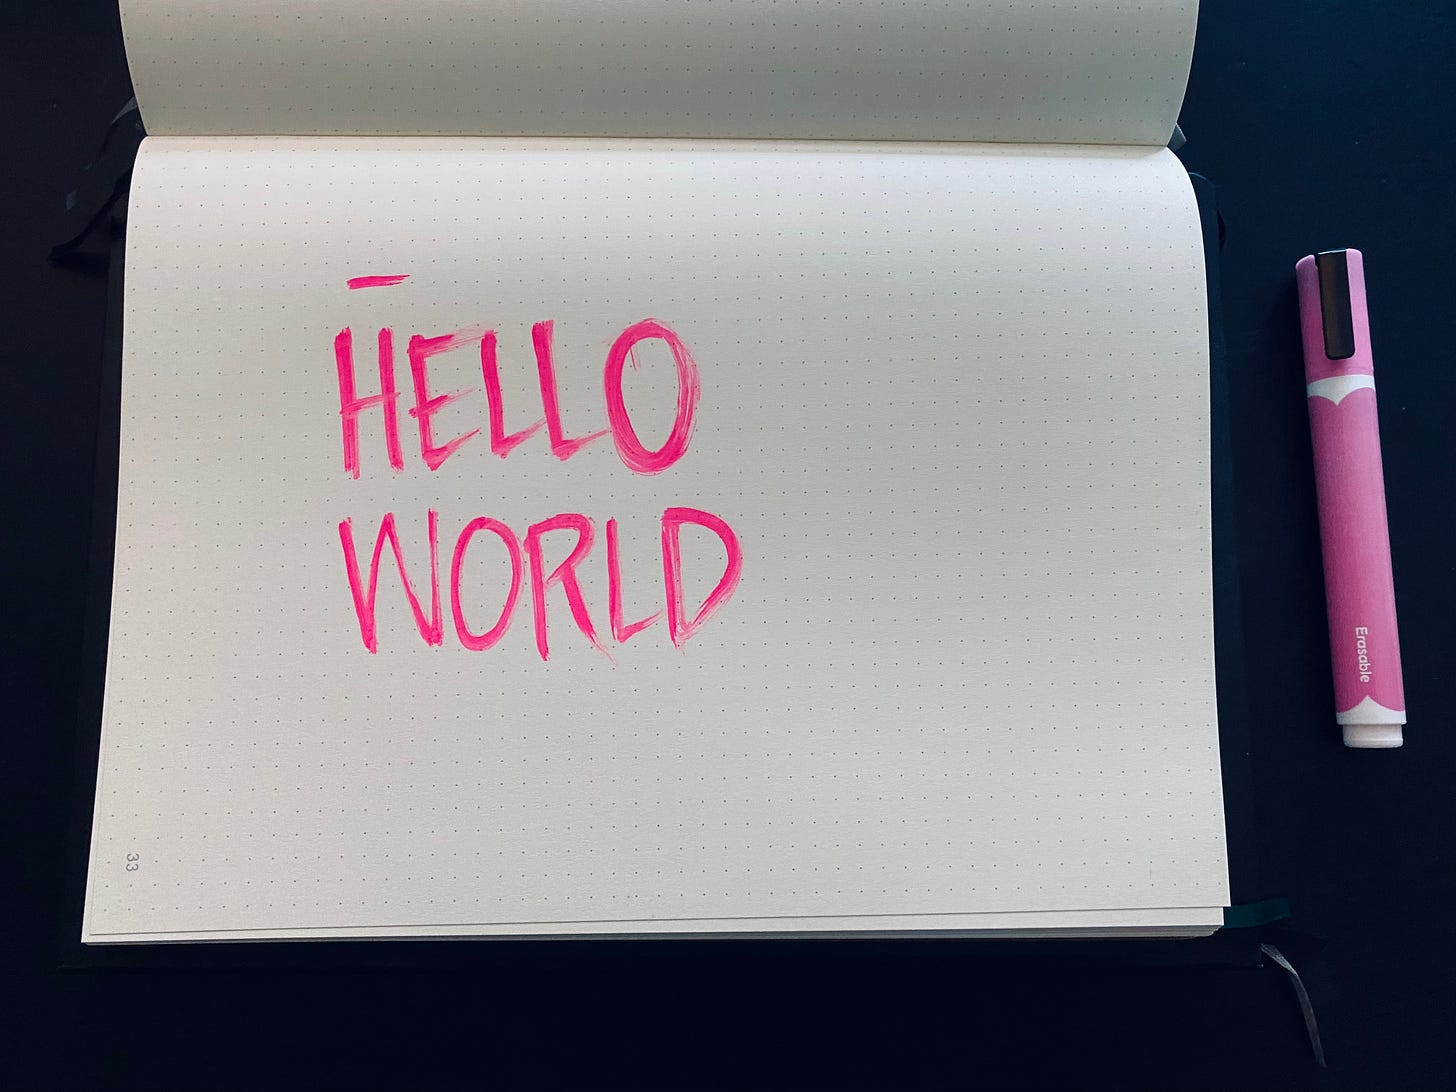 Hello world written in a notebook with a pink paint marker